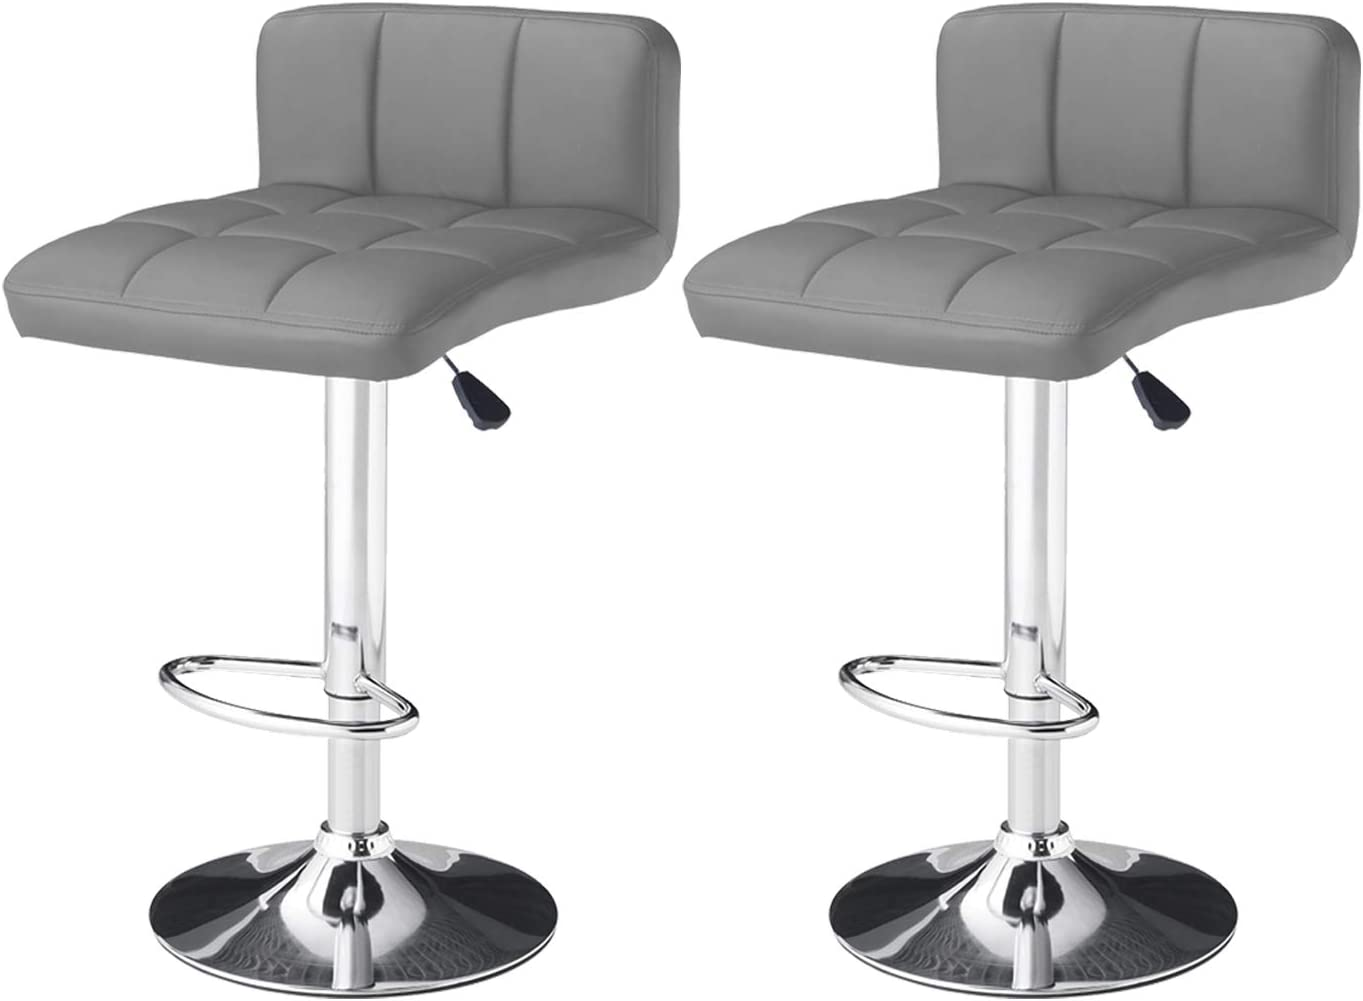 LOVEMYHOUSE Bar Stools Made of PU Leatherette Exterior with Adjustable Swivel Gas Lift and Chrome Footrest Base for Breakfast Counter Kitchen Home Bar Black, 1PCS